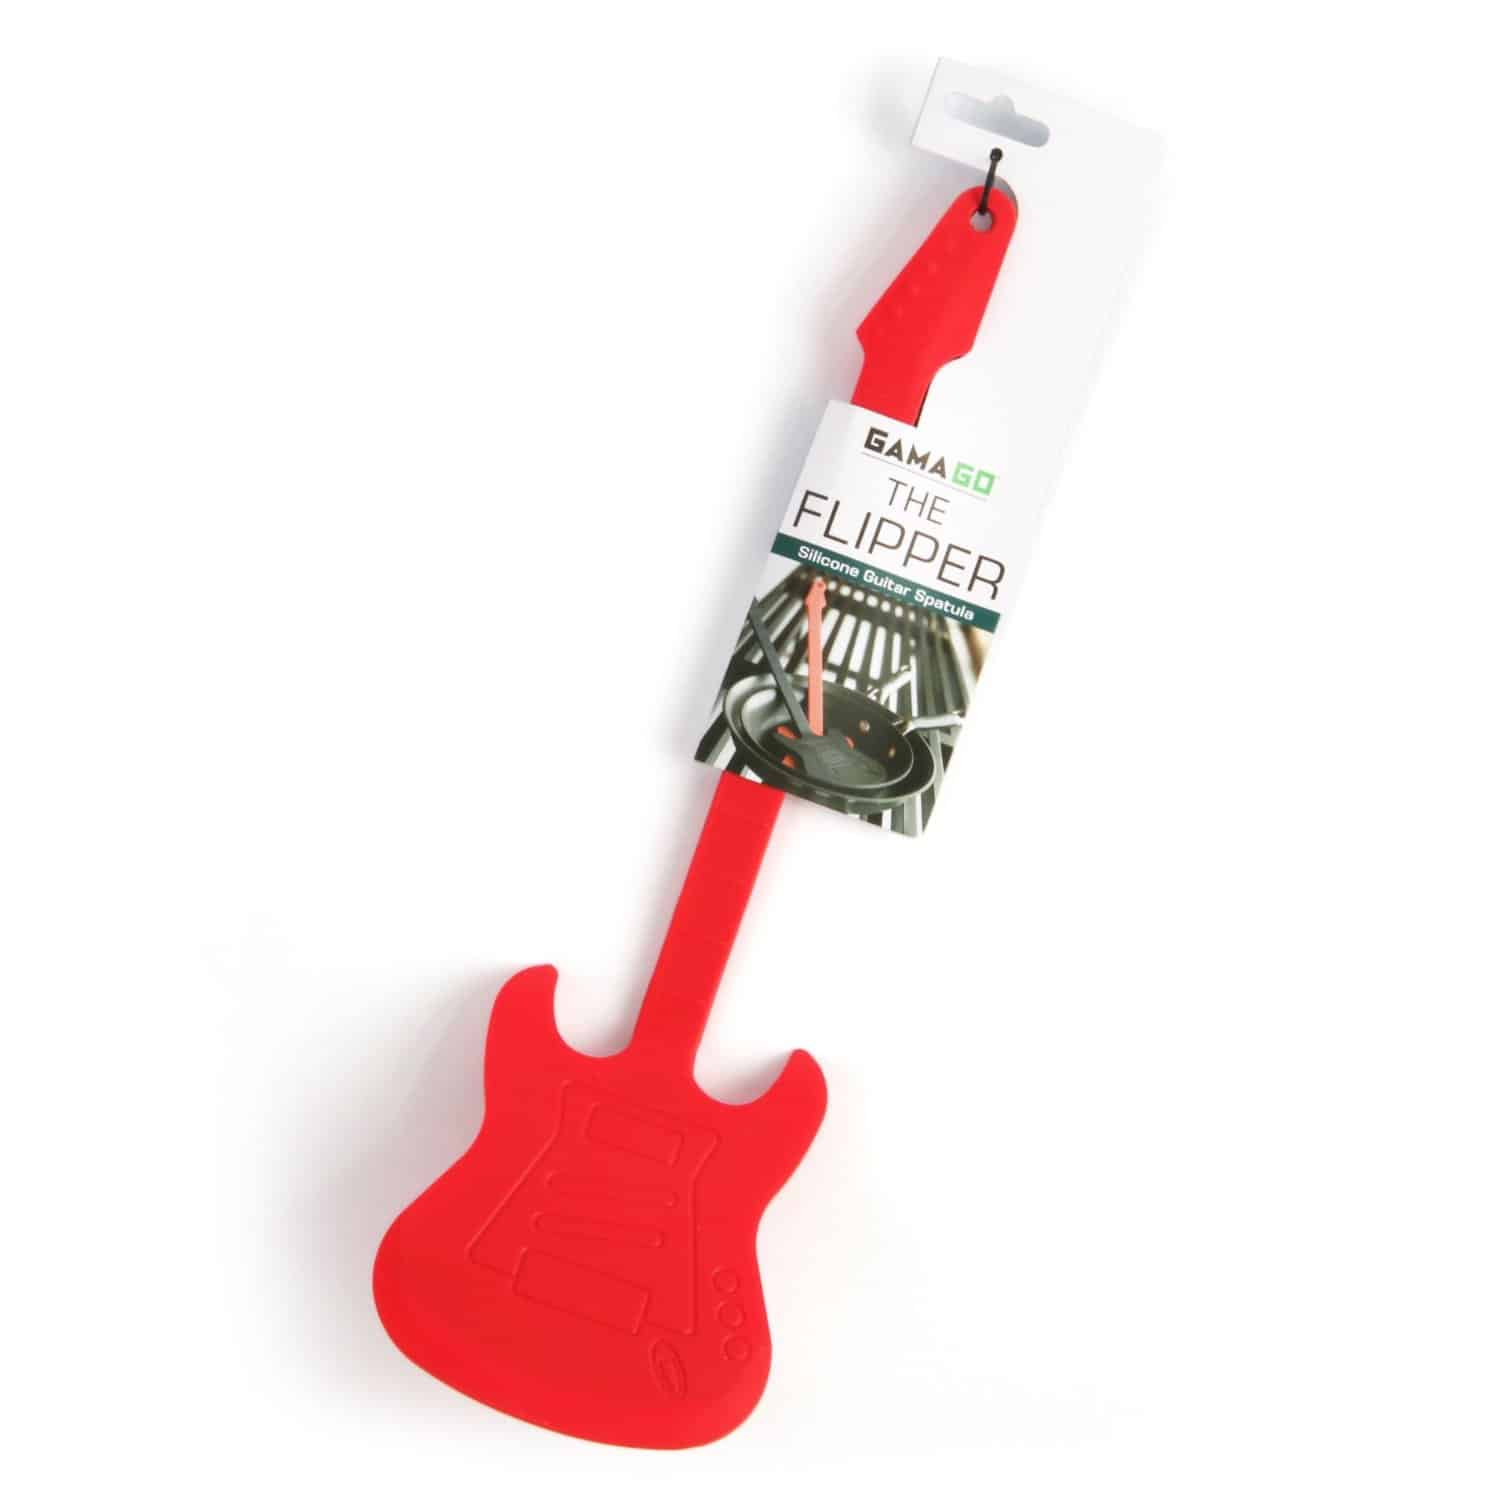 GAMA GO Flipper Silicone Guitar Spatula Red Gift For Dad